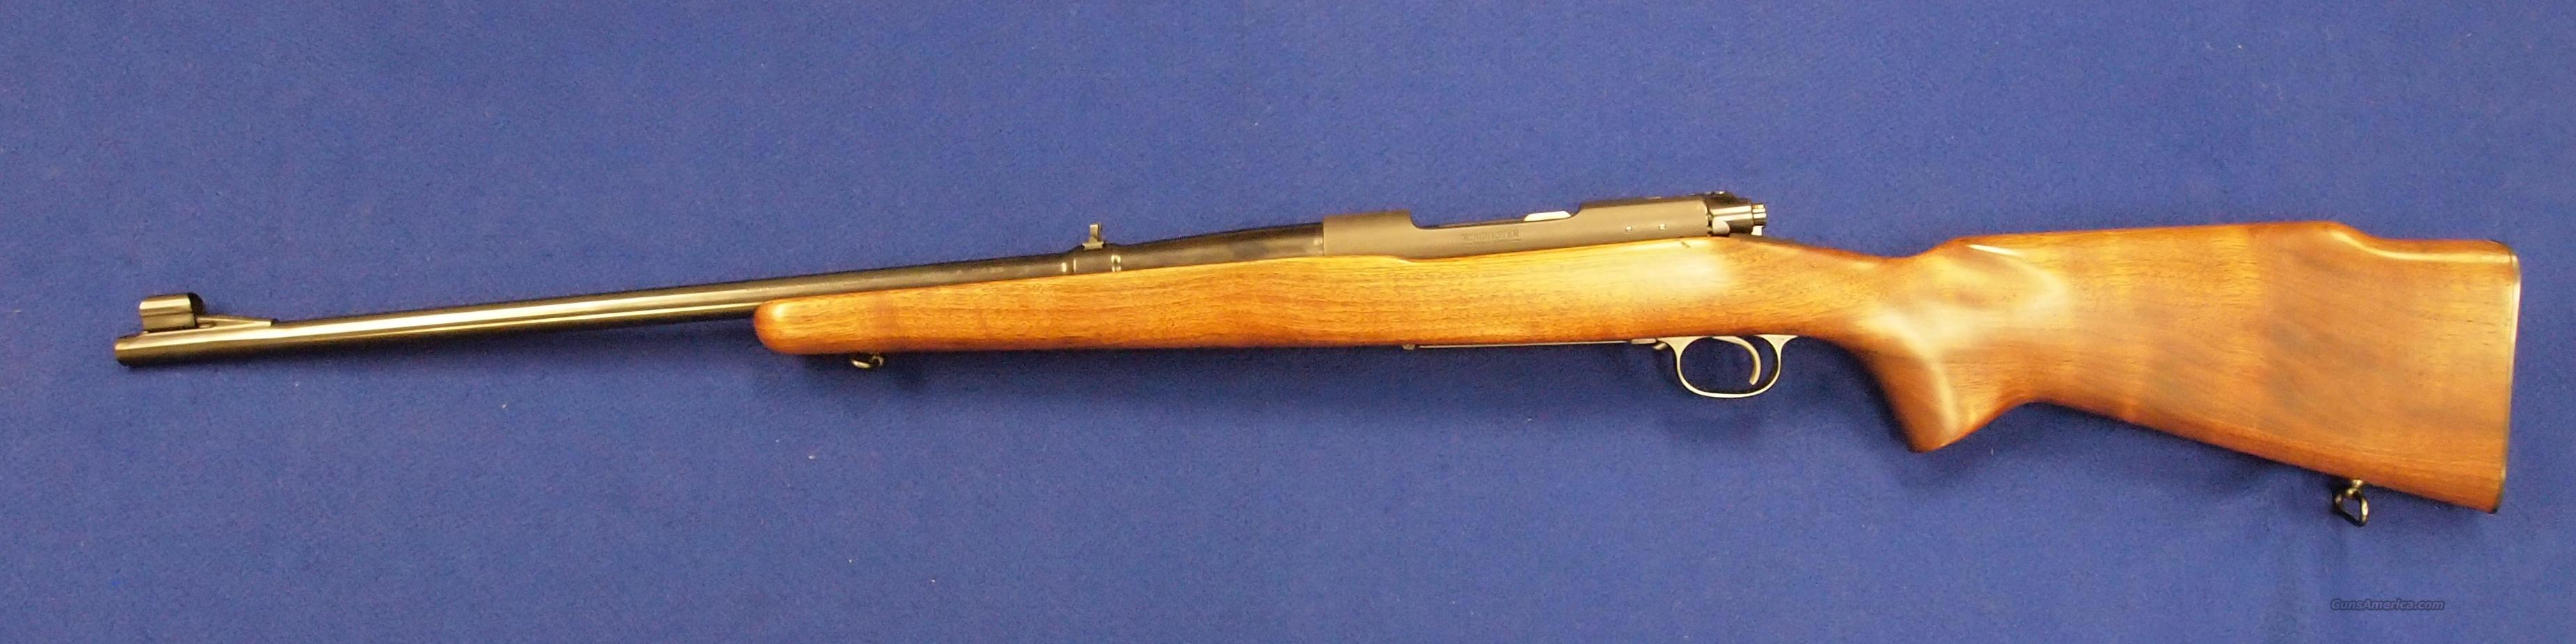 Winchester Model 70 Pre-64, 270 Win  Guns > Rifles > Winchester Rifles - Modern Bolt/Auto/Single > Model 70 > Pre-64